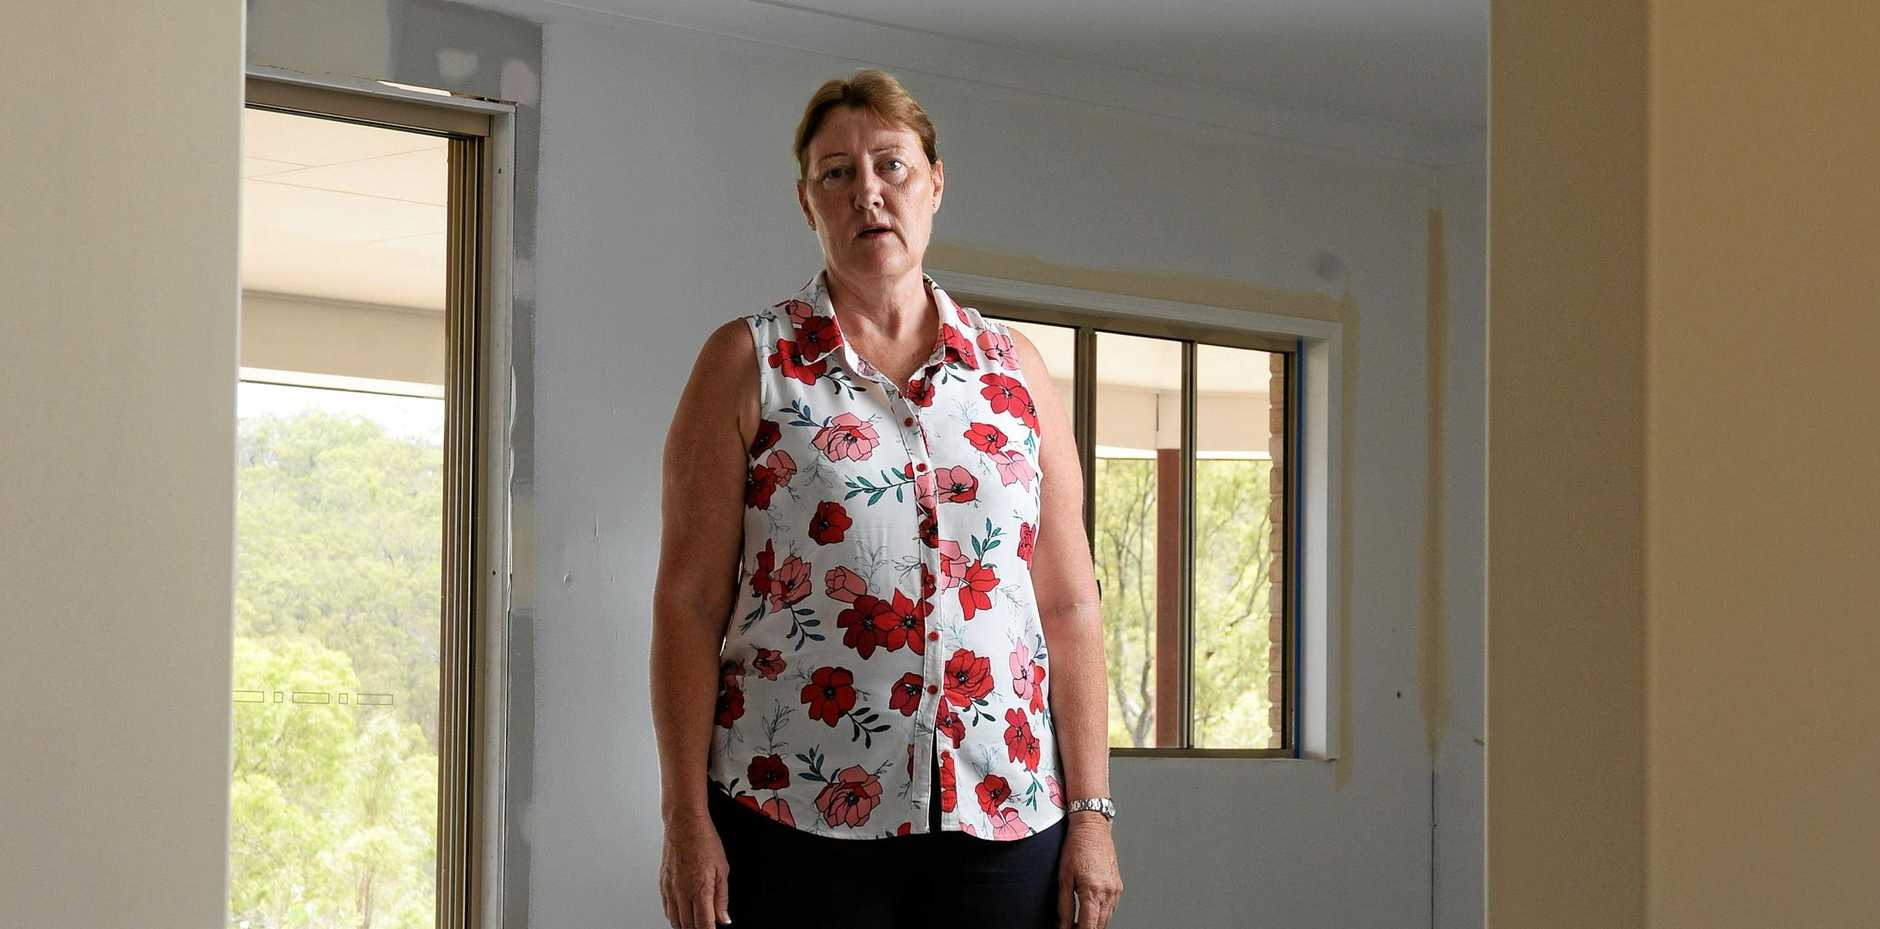 hOME BUILD HORROR: Peggy Hockey's life us slowly returning to normal after the collapse of G.J Gardner homes at North Ipswich.